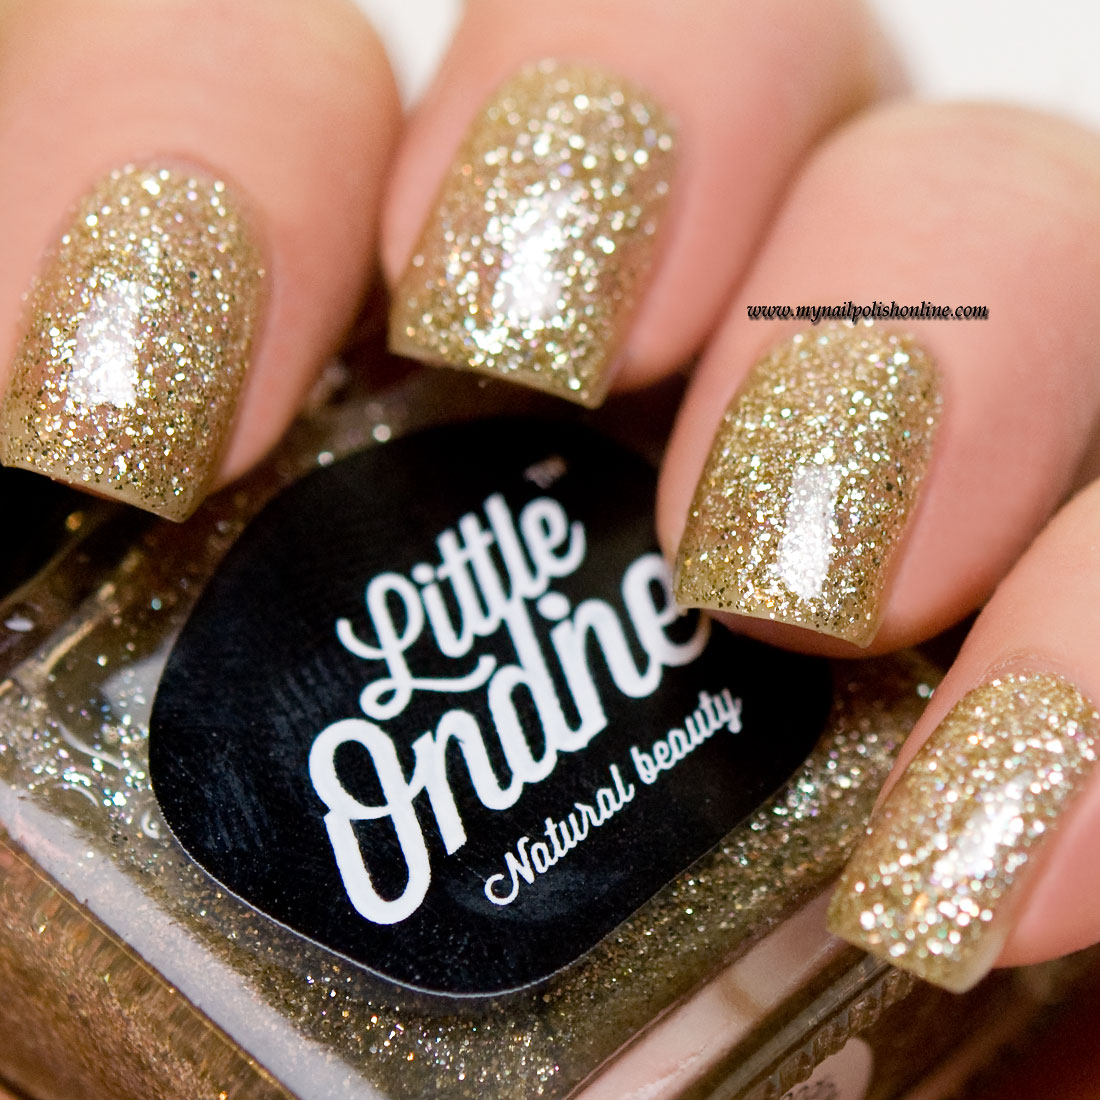 New Years Nail Polish: Happy New Year With Little Ondine